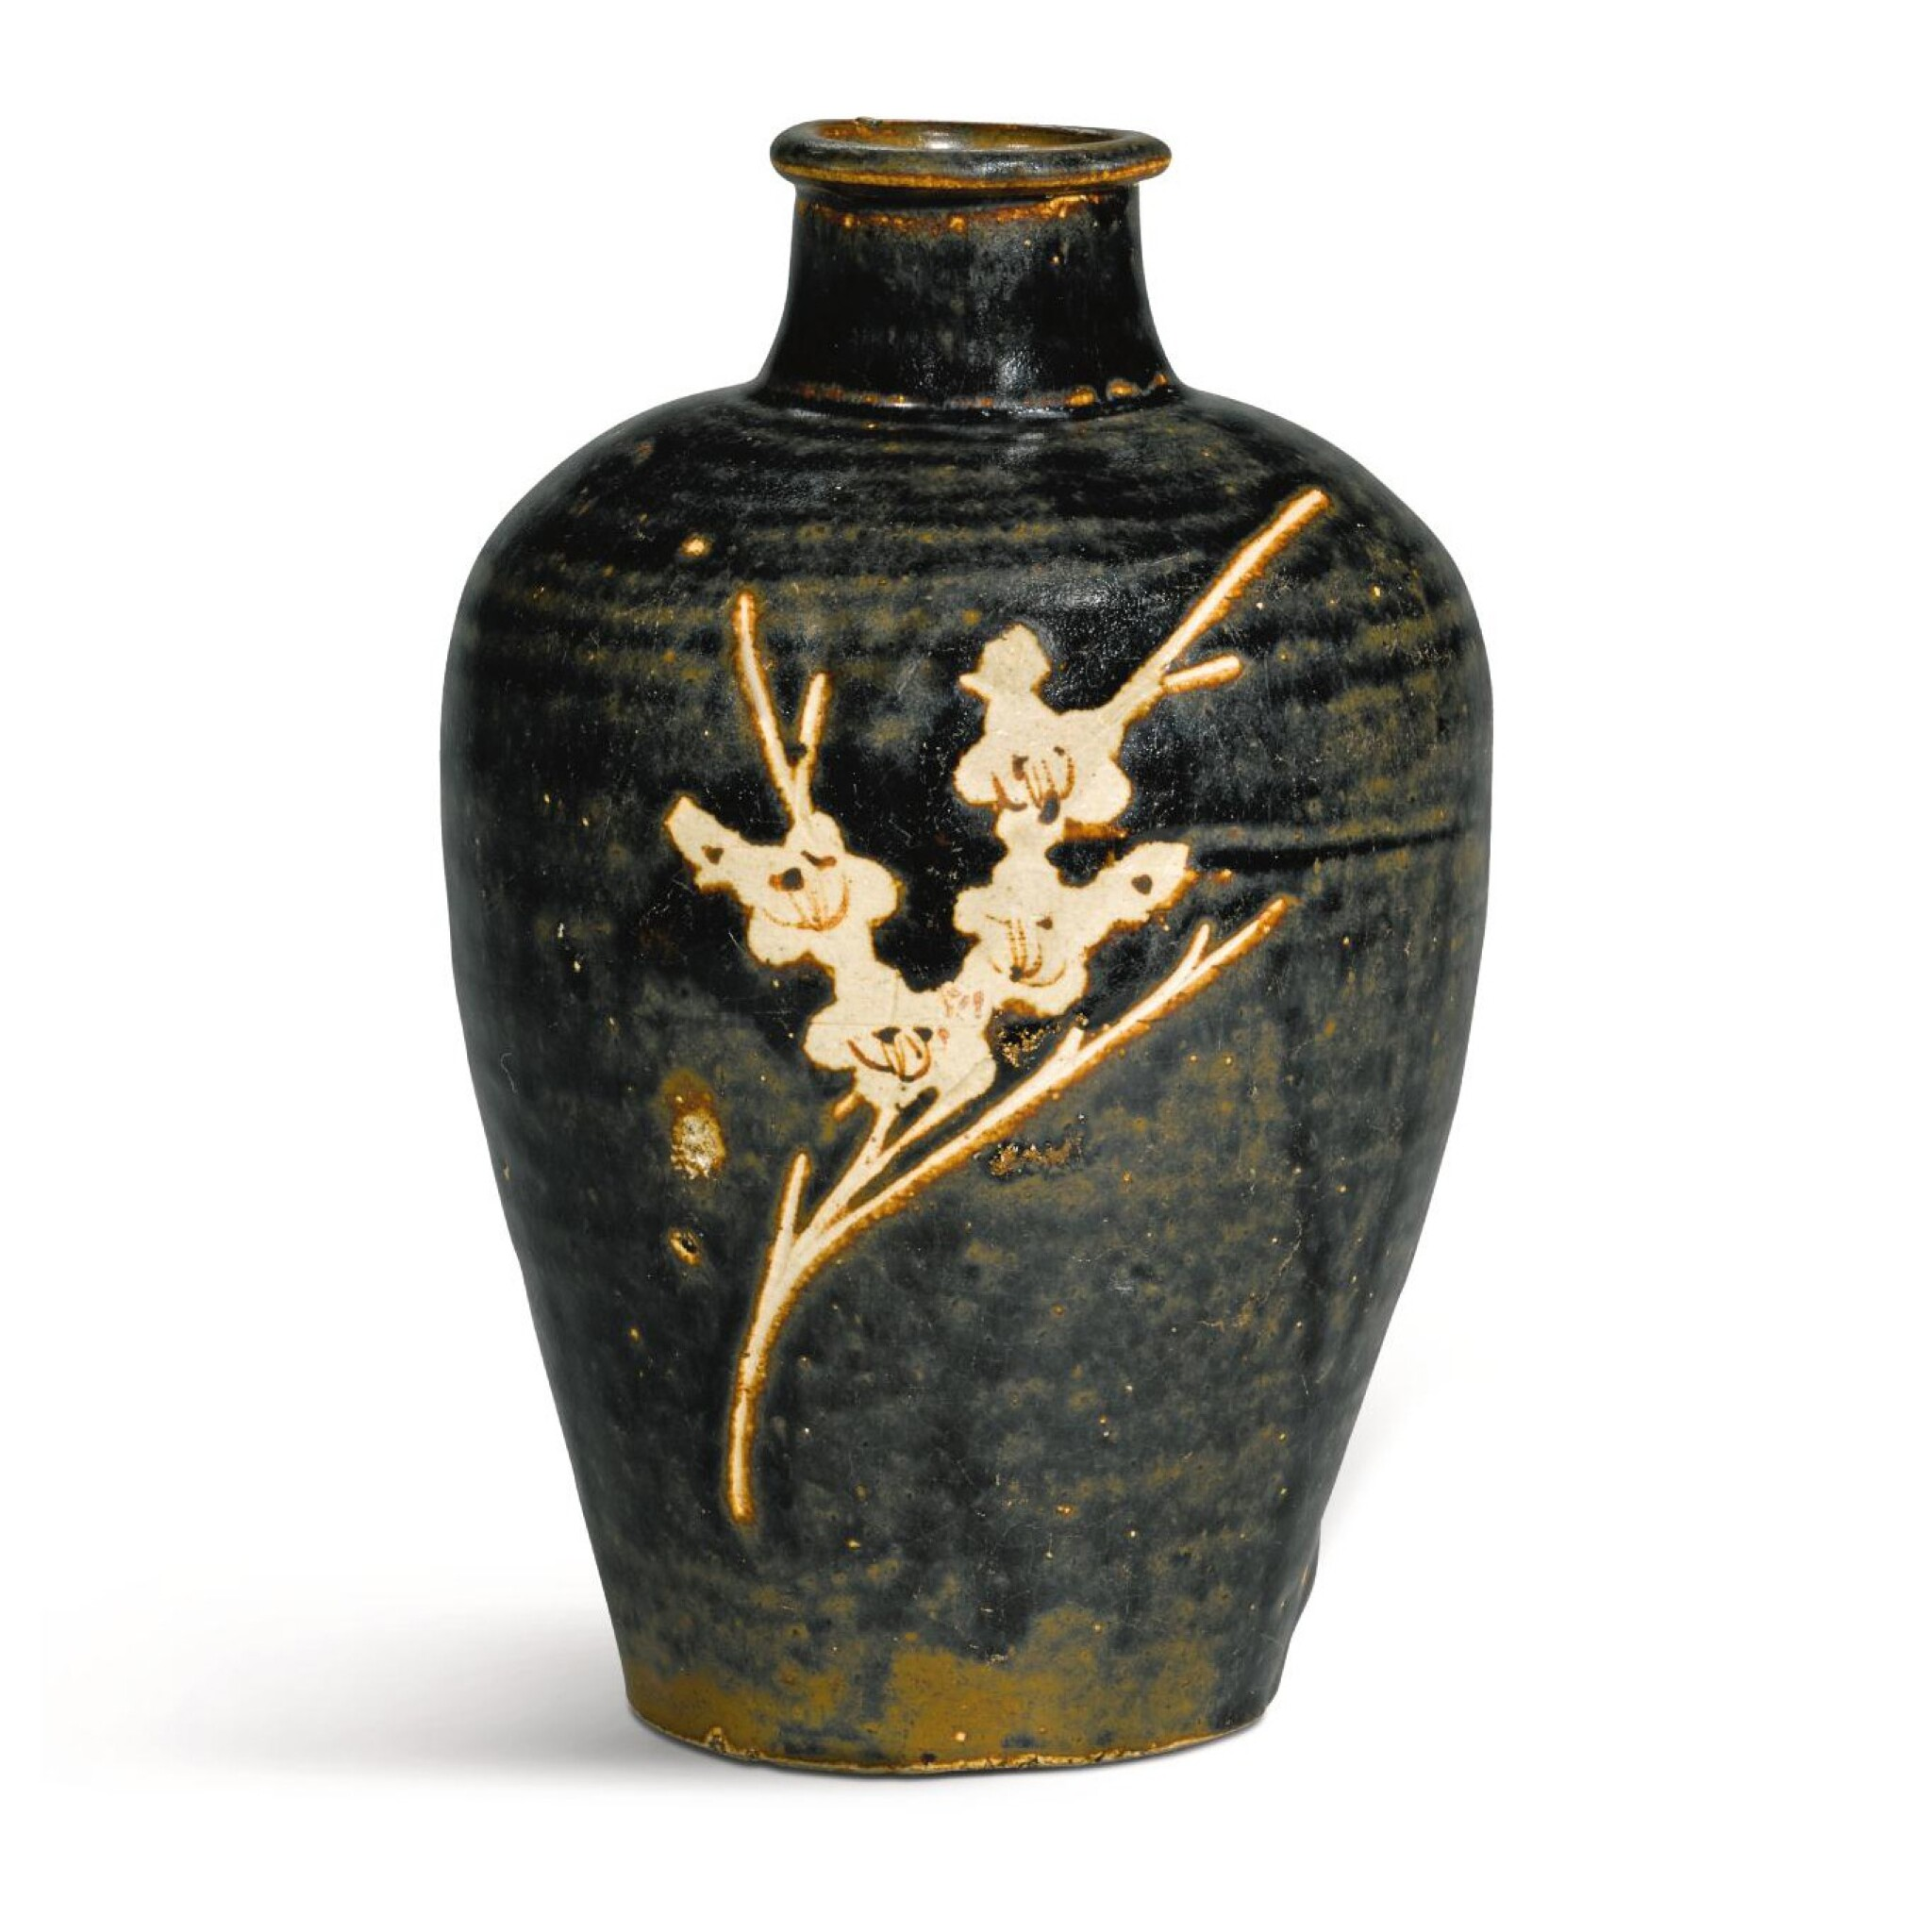 View full screen - View 1 of Lot 240. A JIZHOU RESIST-DECORATED 'PRUNUS' VASE, MEIPING, SOUTHERN SONG DYNASTY, 12TH/13TH CENTURY | 南宋 十二/十三世紀 吉州窰黑釉剔花折枝梅紋梅瓶.